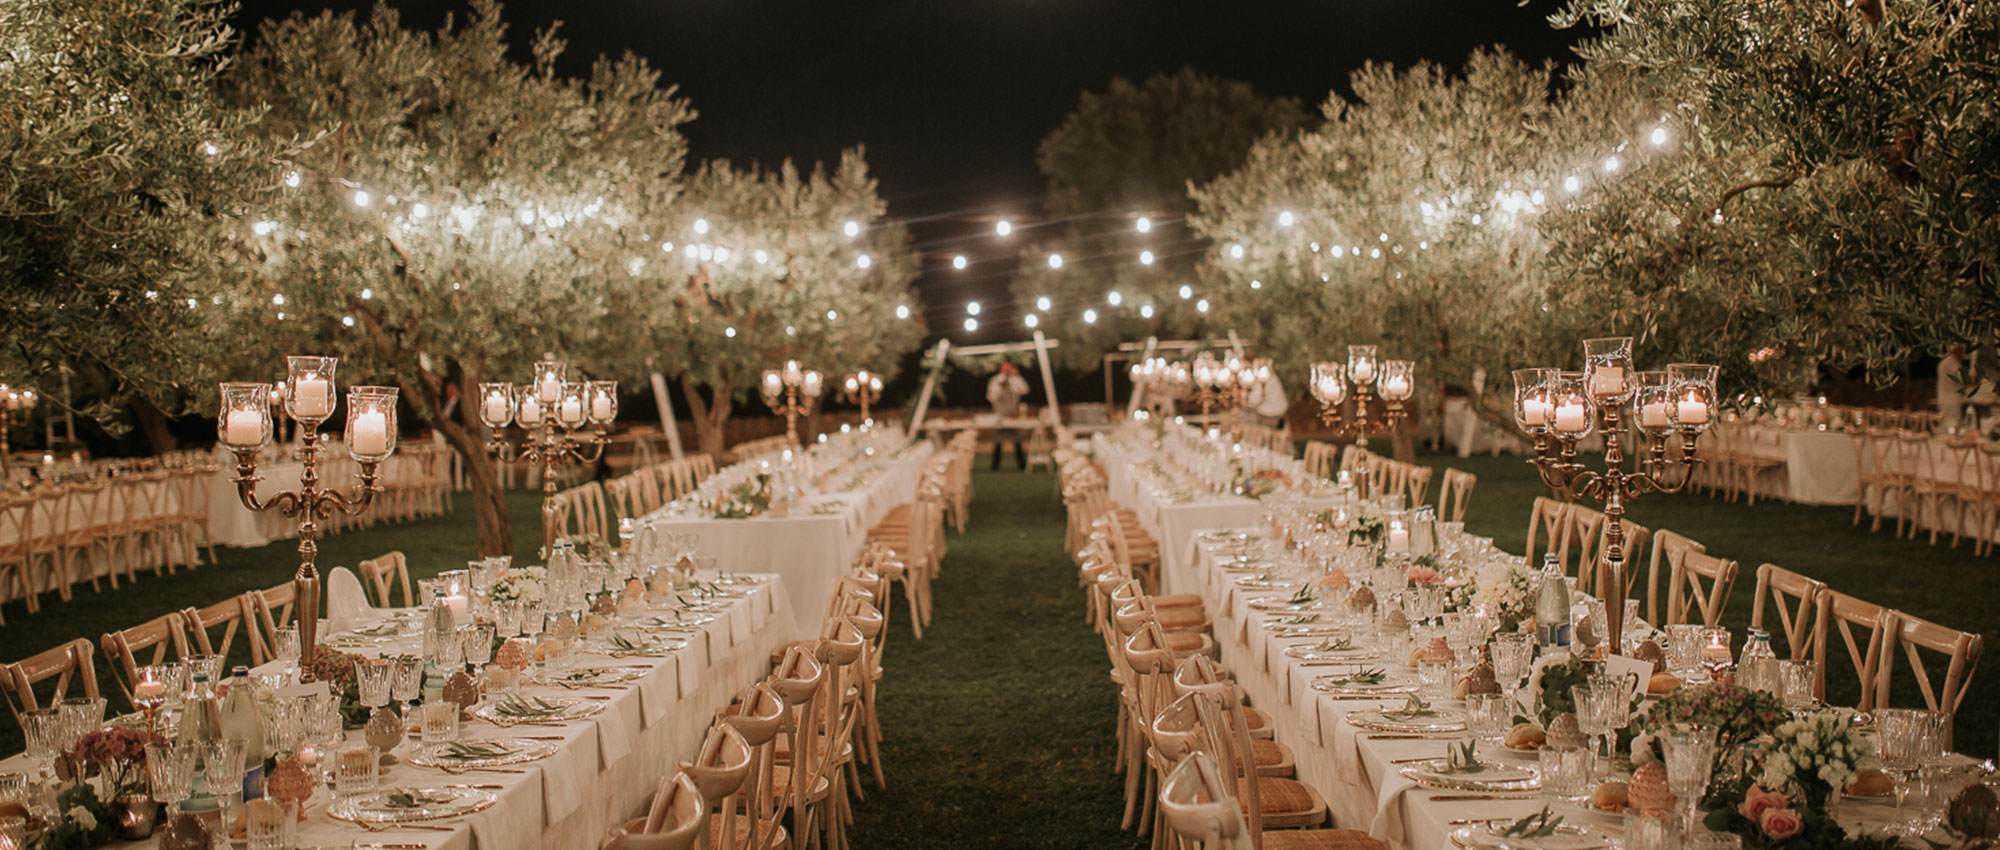 glamour wedding in italy